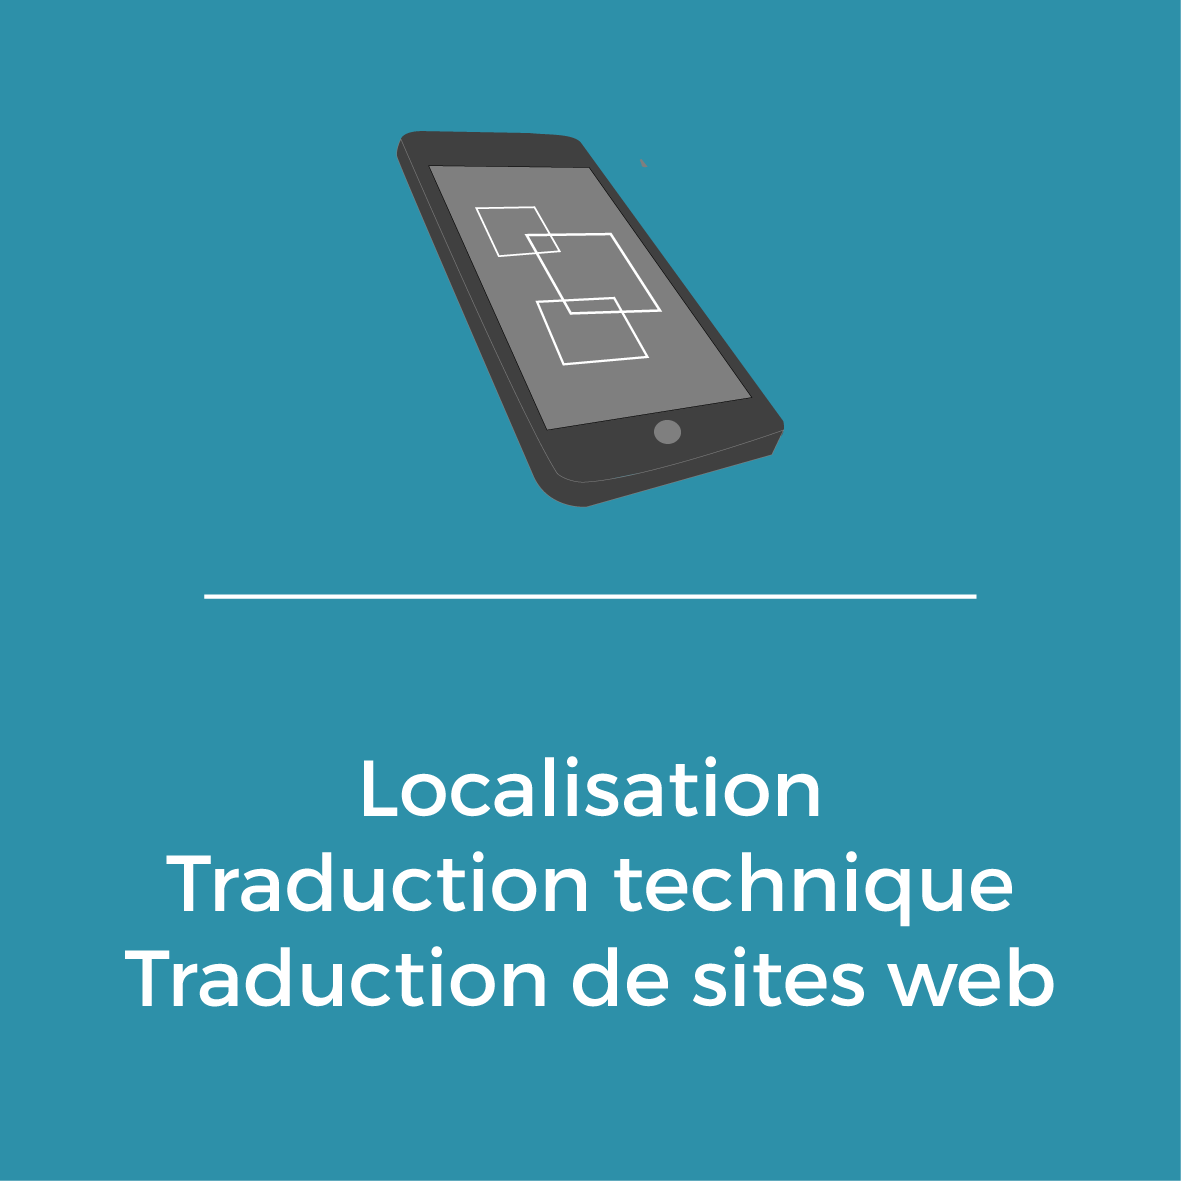 Services - Localisation - Taduction technique - Traduction de sites web